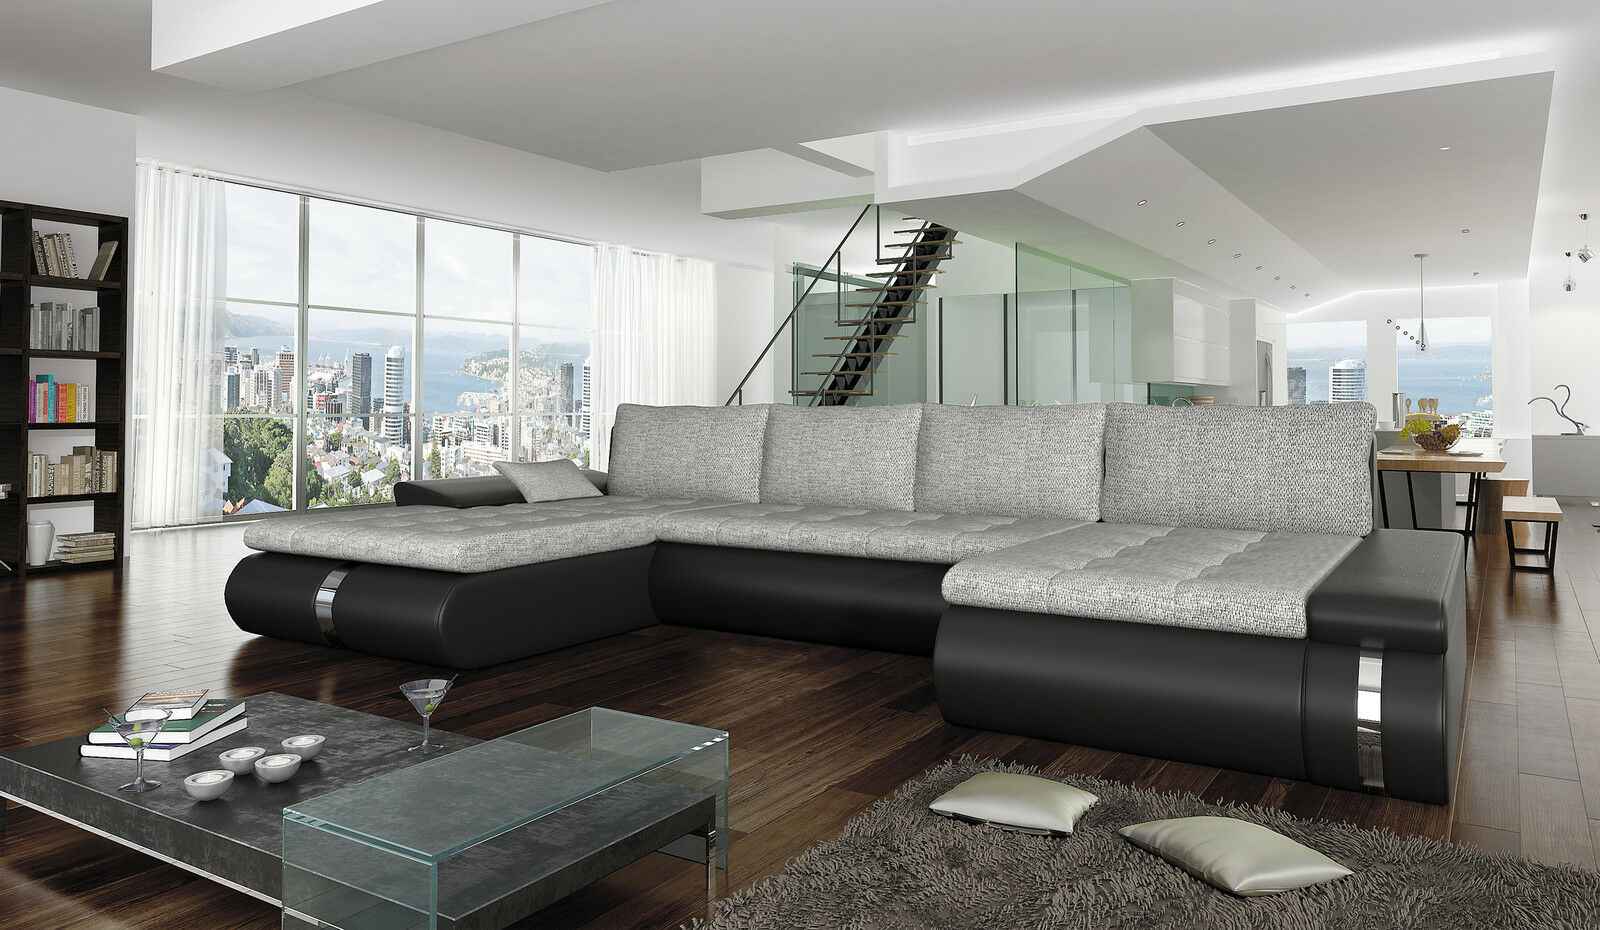 couchgarnitur sofa garnitur schlafsofa fado lux mit schlaffunktion u form sofa eur 999 90. Black Bedroom Furniture Sets. Home Design Ideas